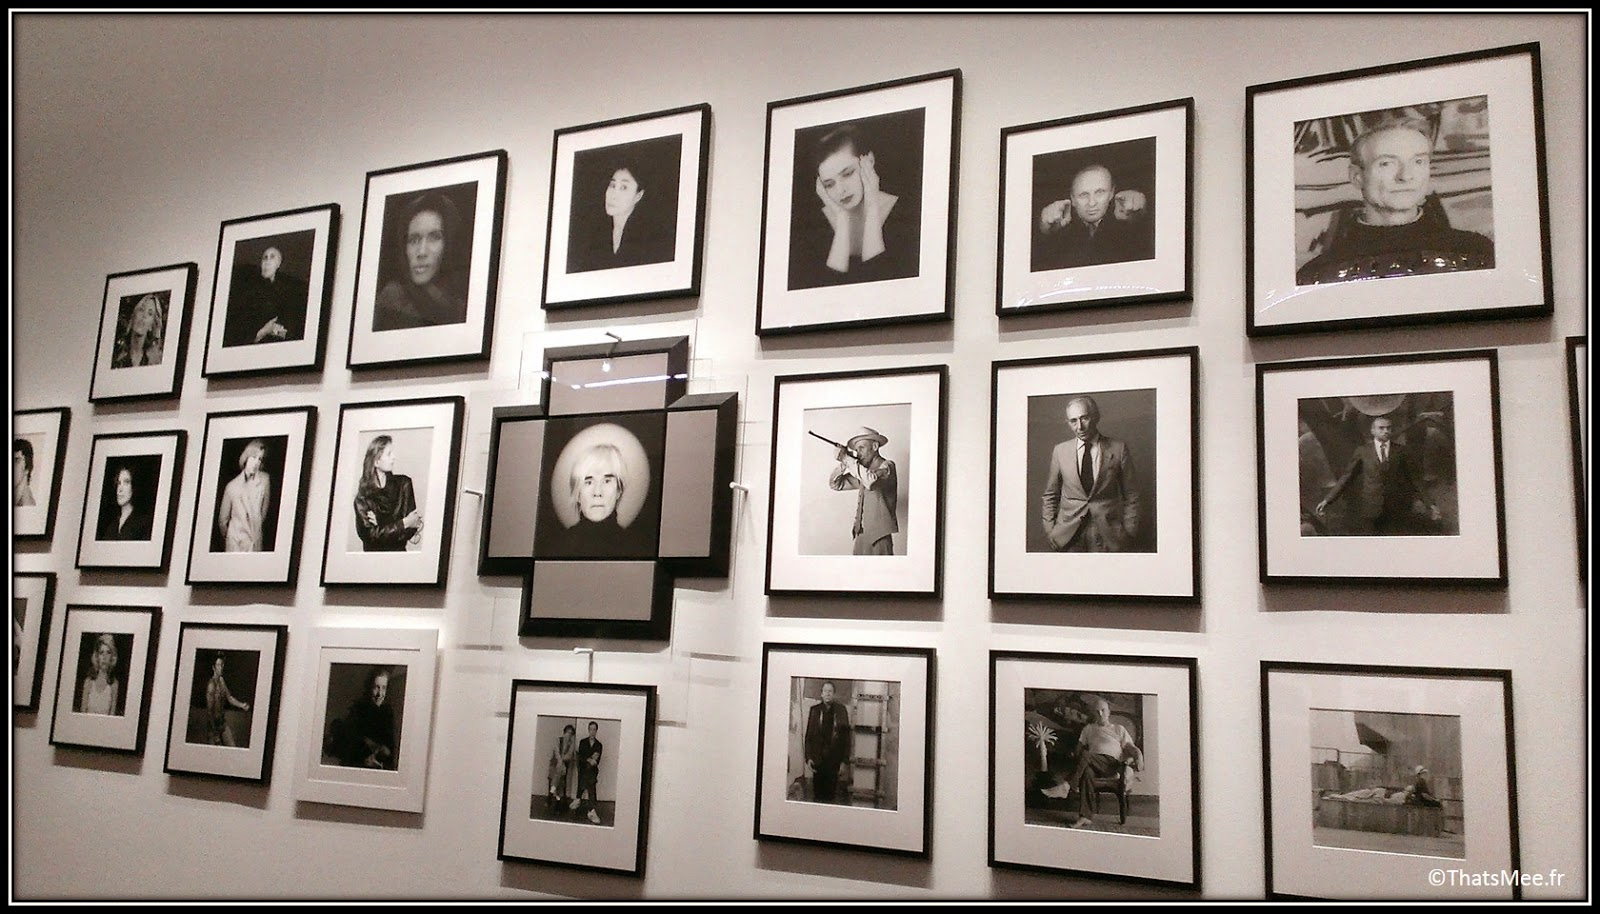 Galerie portraits Expo Robert Mapplethorpe  Grand Palais Paris debbie Harry iggy Pop Andy Warhol stars Patti Smith